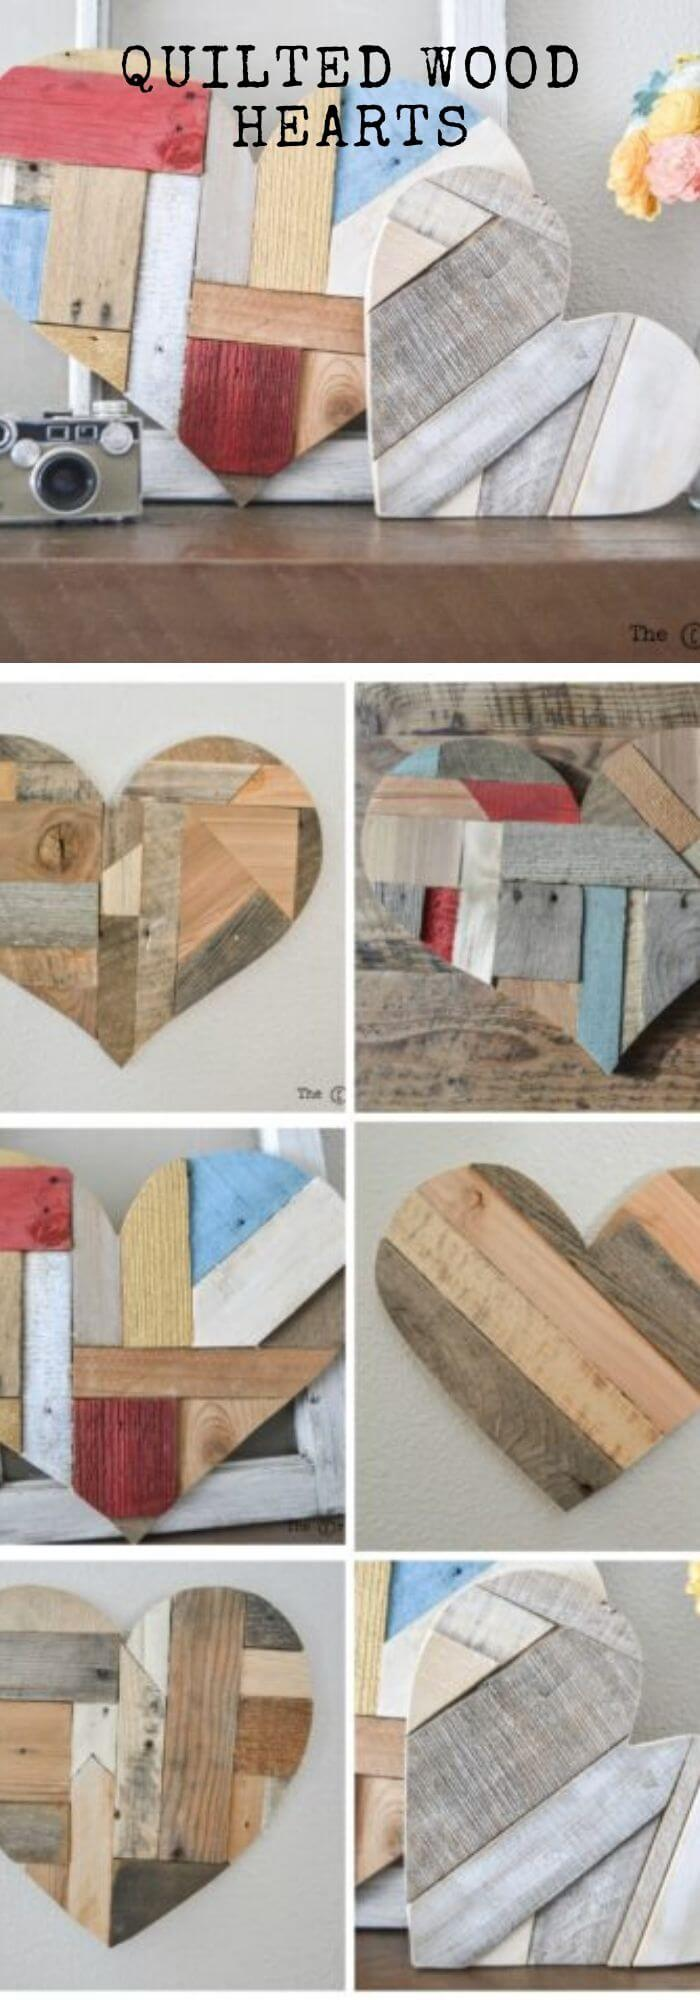 The broken heart recovery - DIY Rustic Wood Heart Ideas & Projects